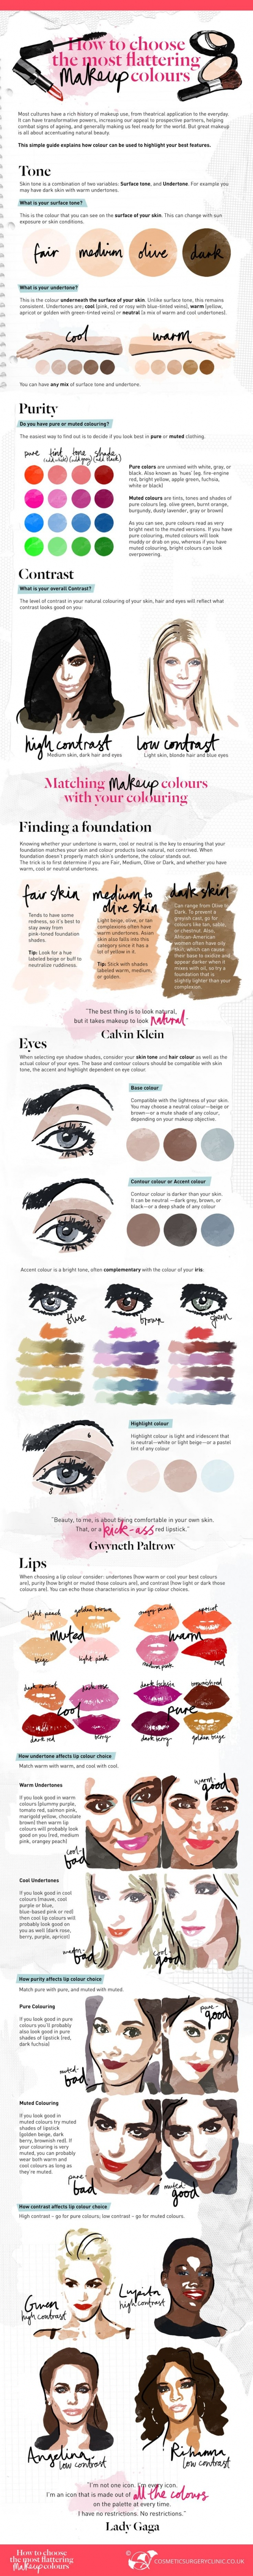 How to Choose the Most Flattering Make-up Colors